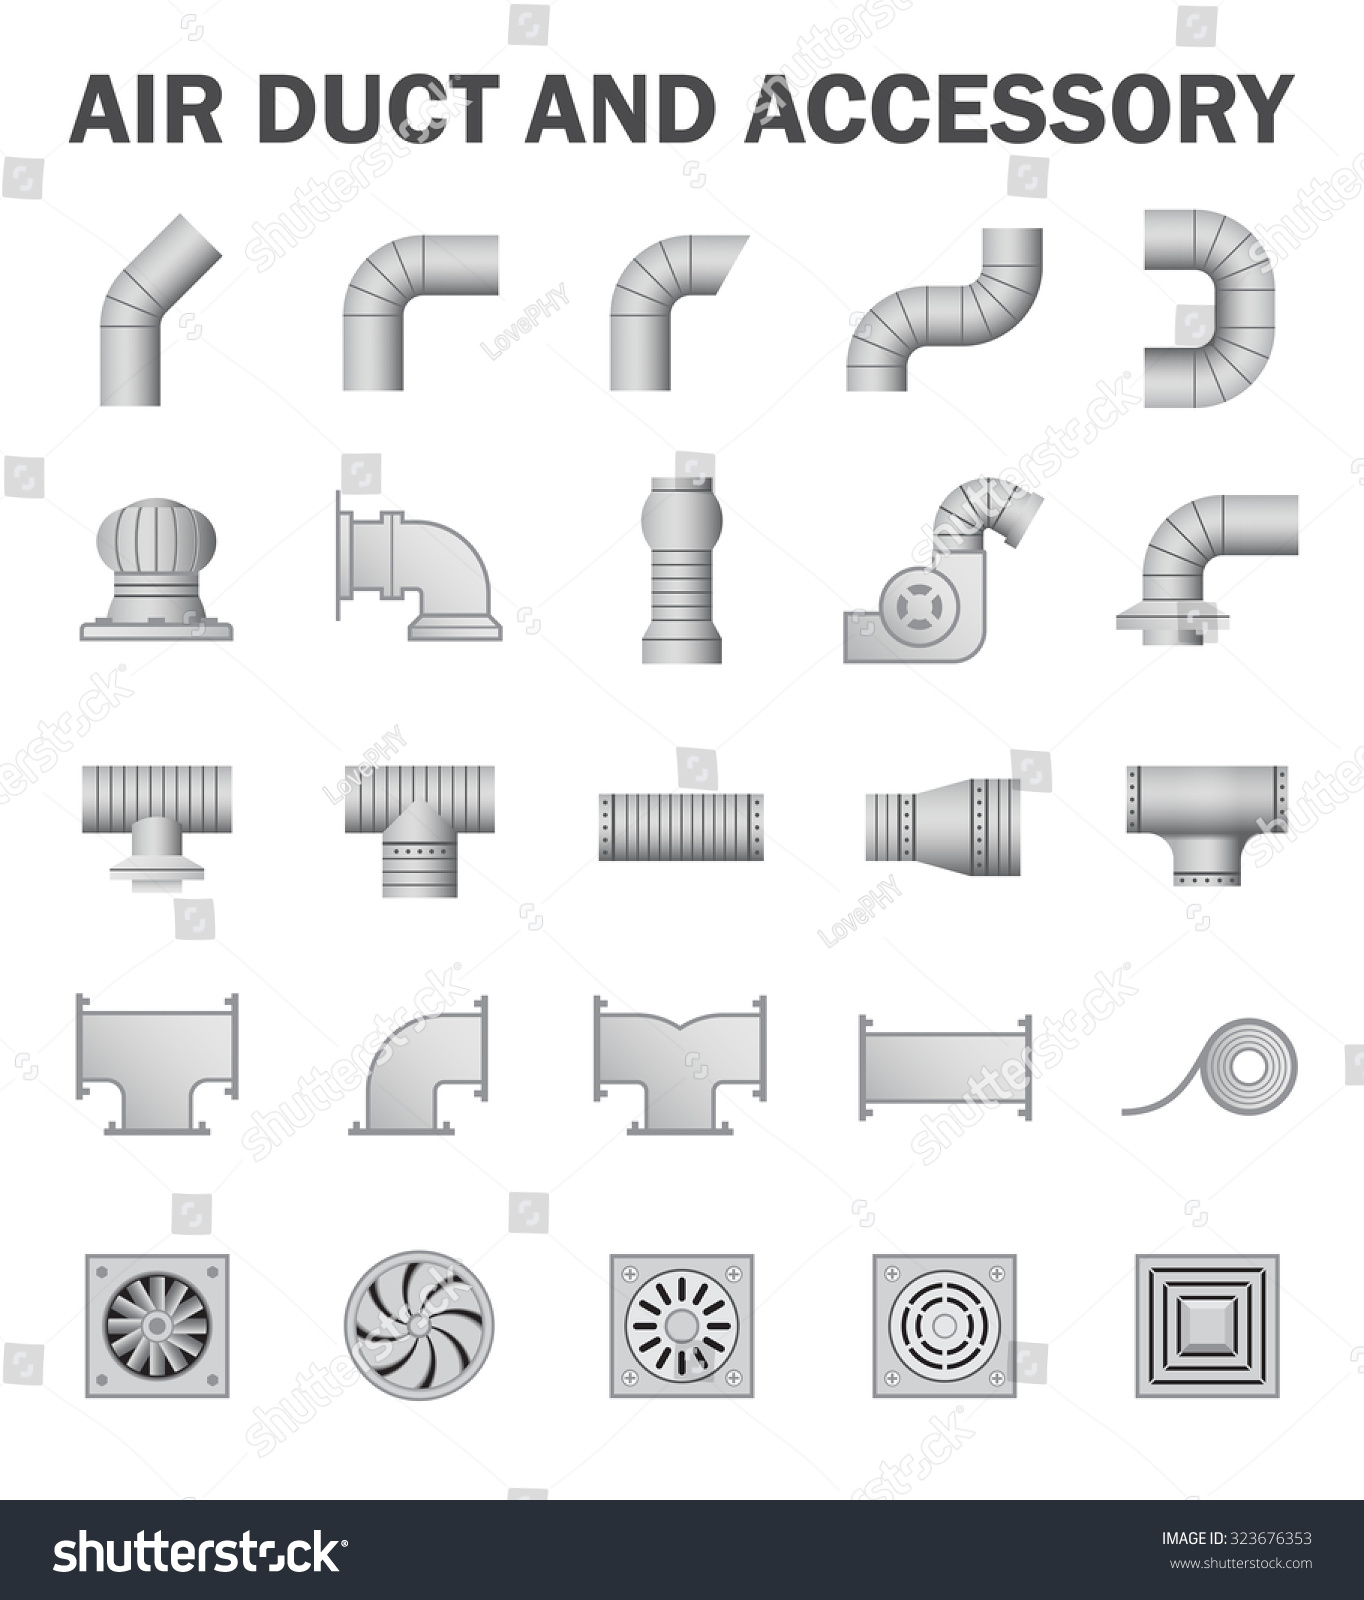 Vector icon air duct pipe pipe stock vector 323676353 shutterstock vector icon of air duct pipe and pipe connector and fan for air conditioning or hvac buycottarizona Image collections